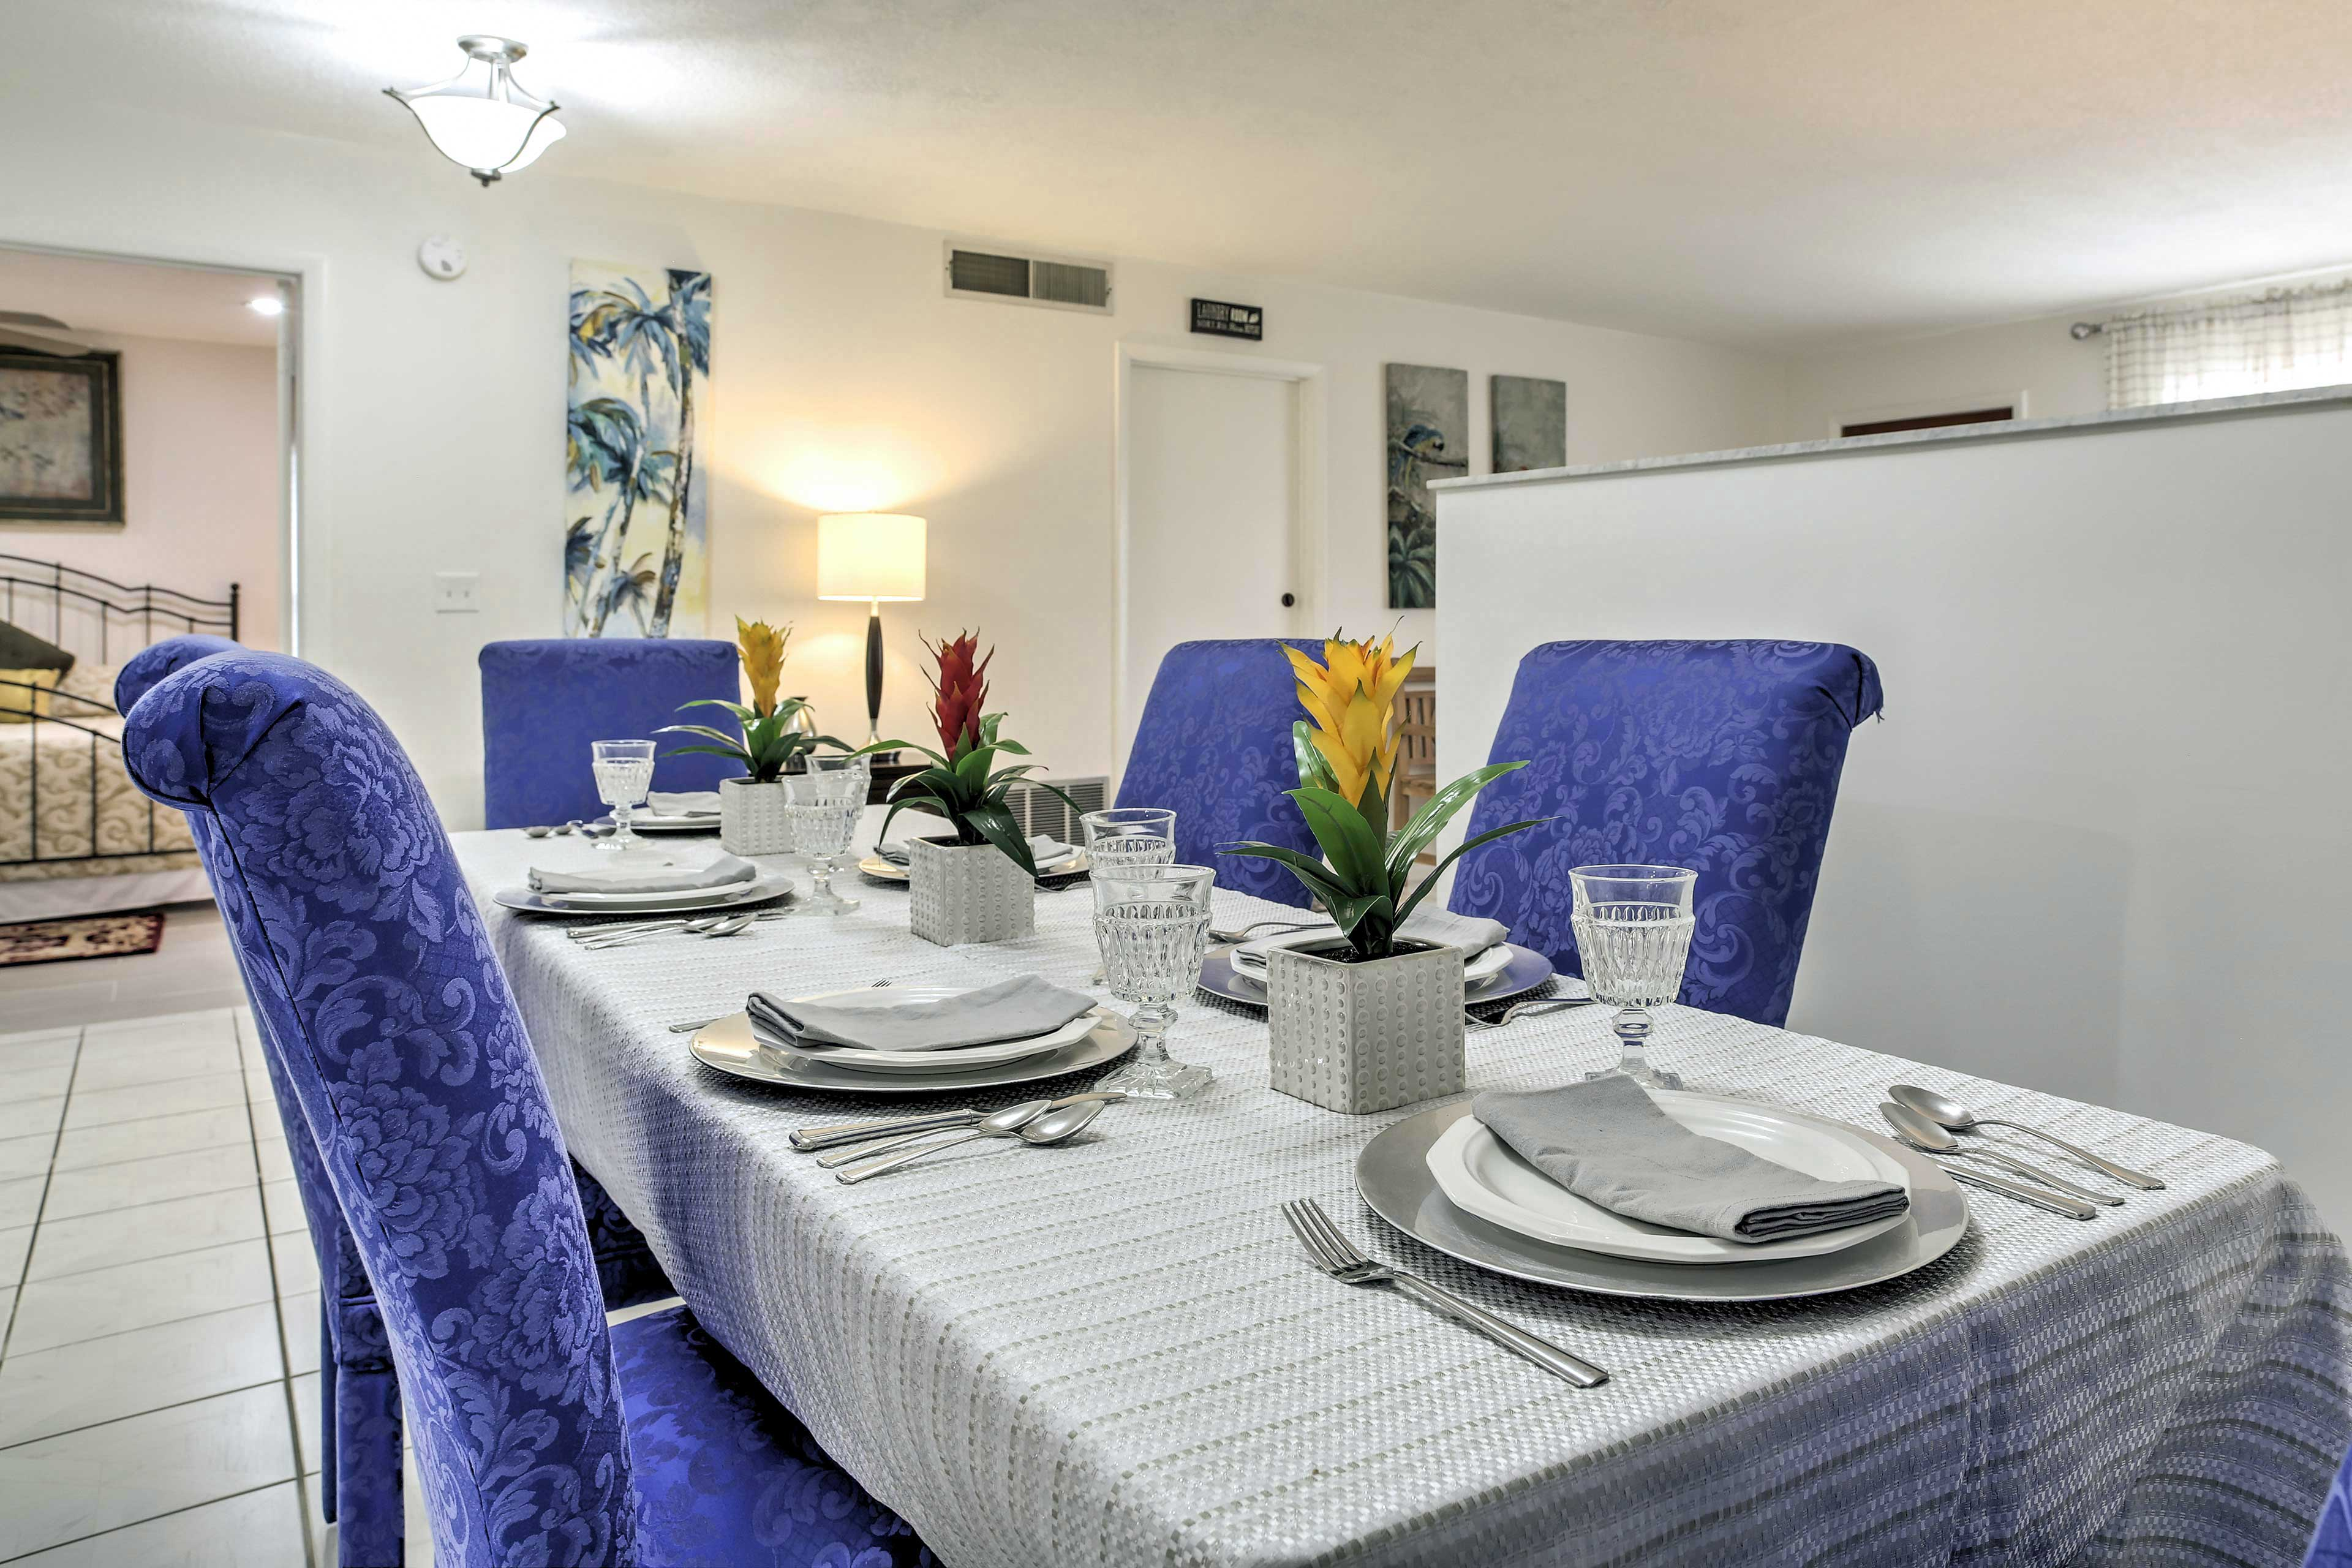 Host dinner for your group at the contemporary dining table.